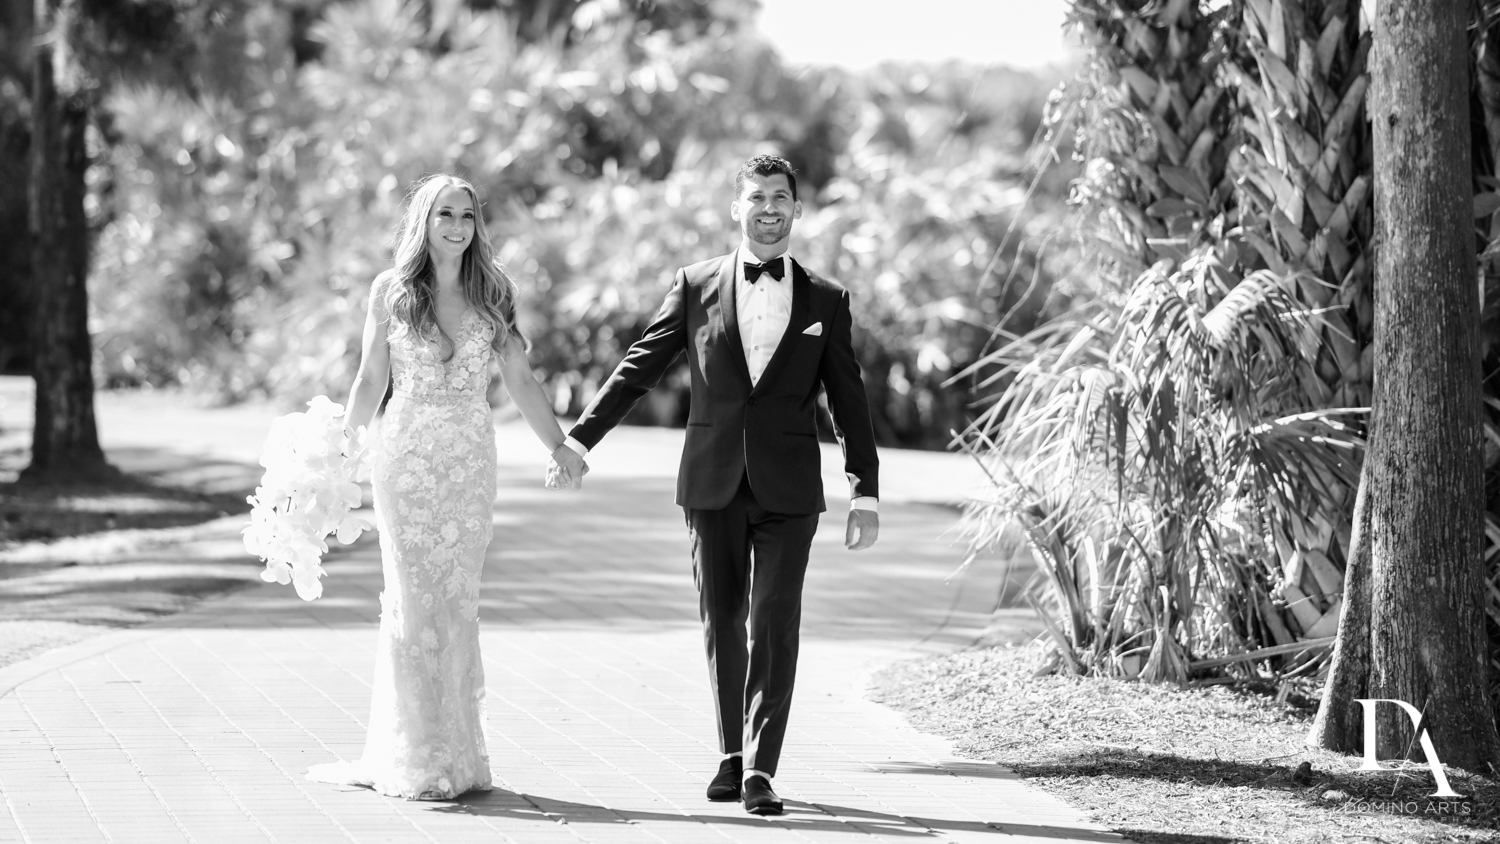 B&W pictures at Sunset Wedding at Boca Rio Golf Club by Domino Arts Photography